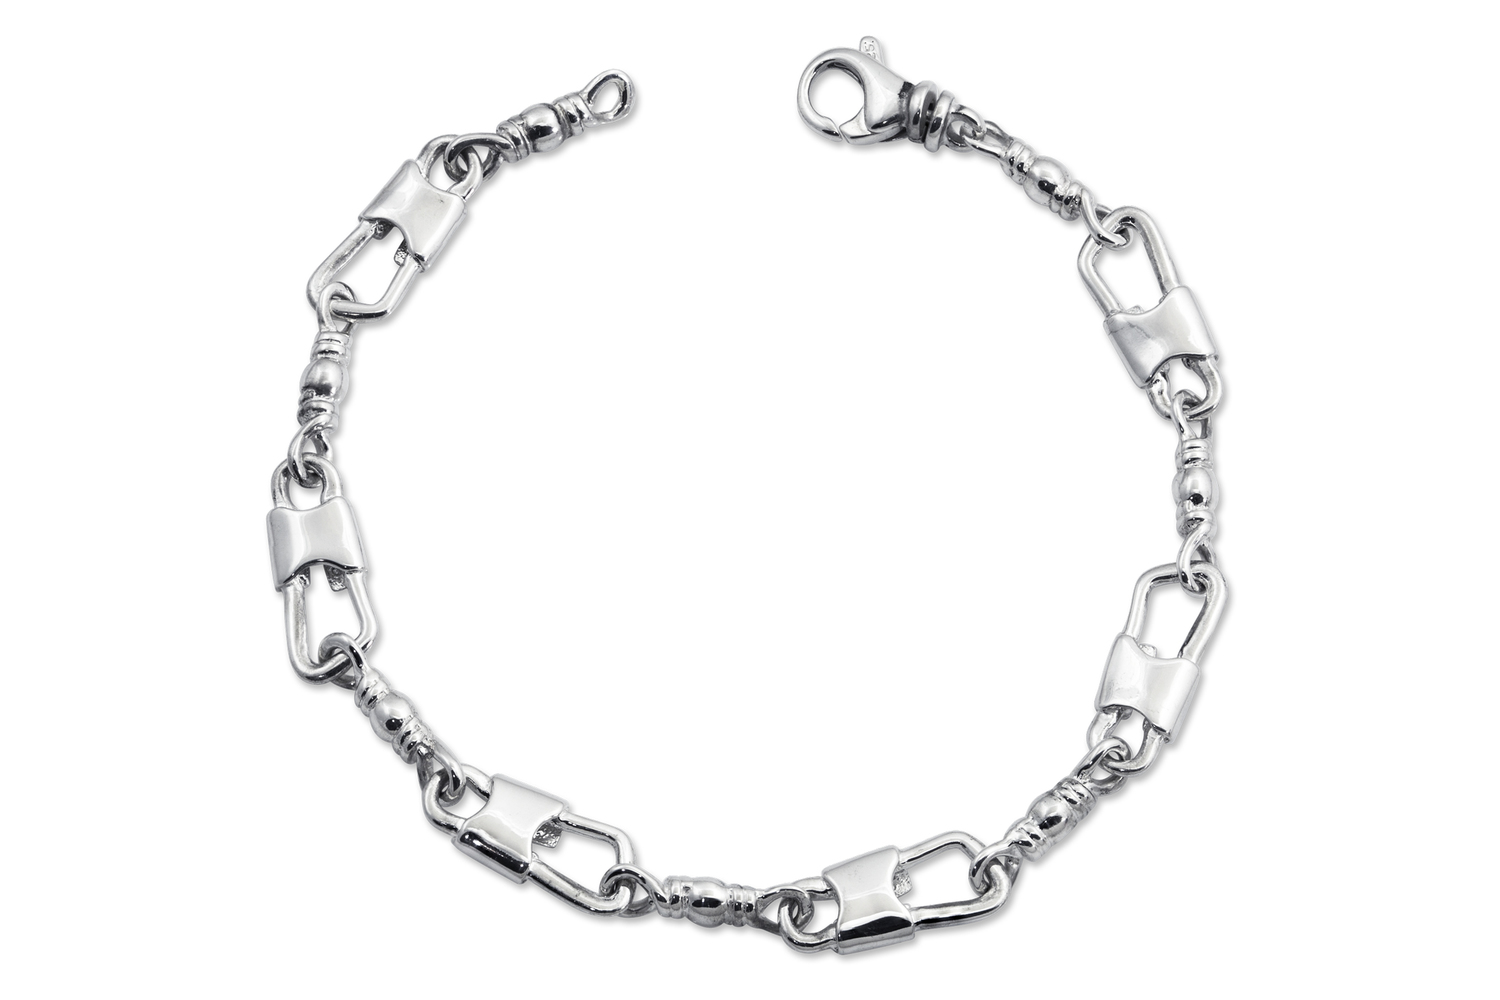 ACTS Sterling Silver Fishers Of Men Bracelet with Cross ID